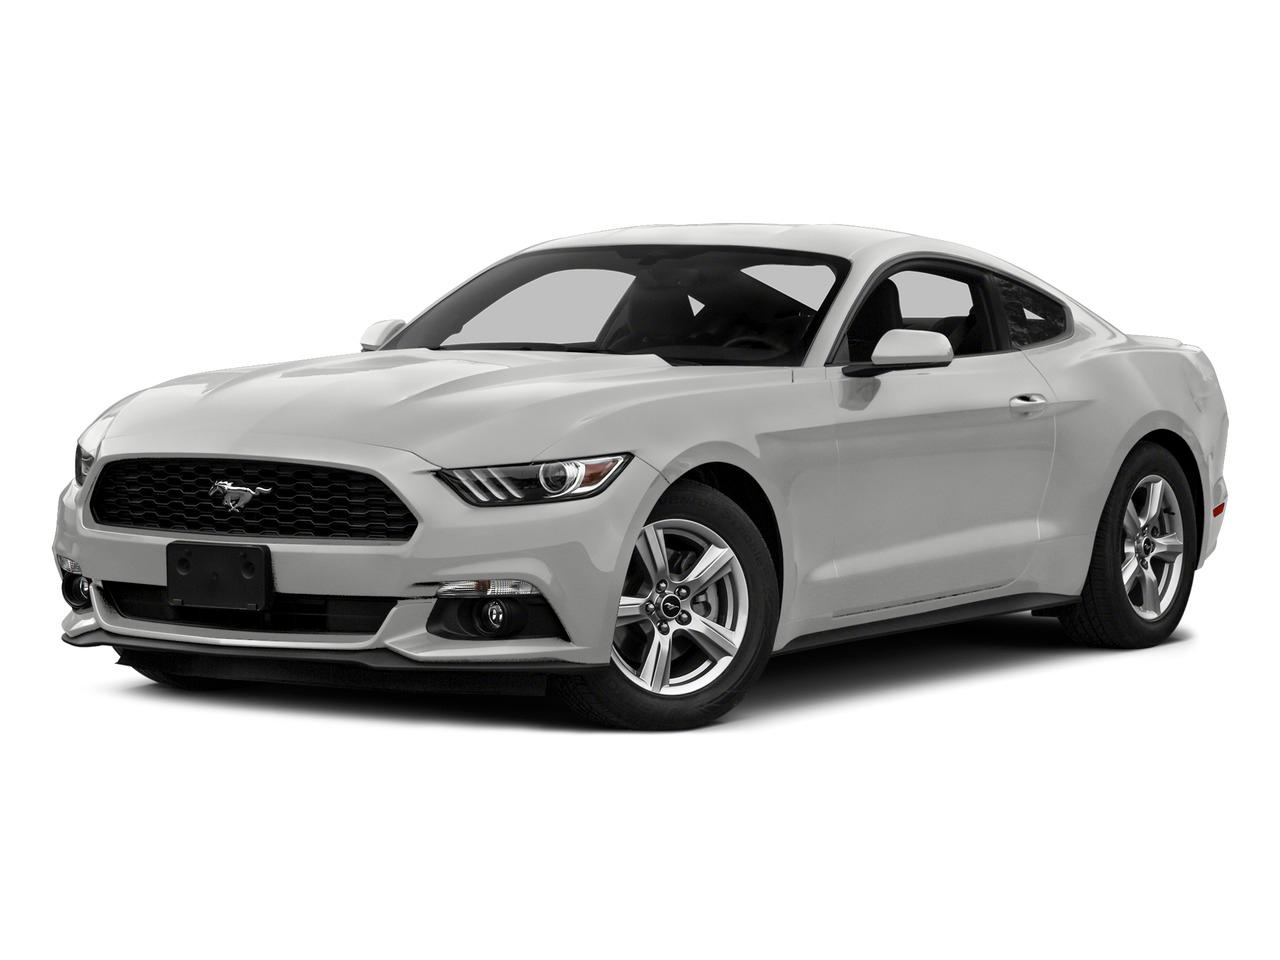 2015 Ford Mustang Vehicle Photo in Bowie, MD 20716